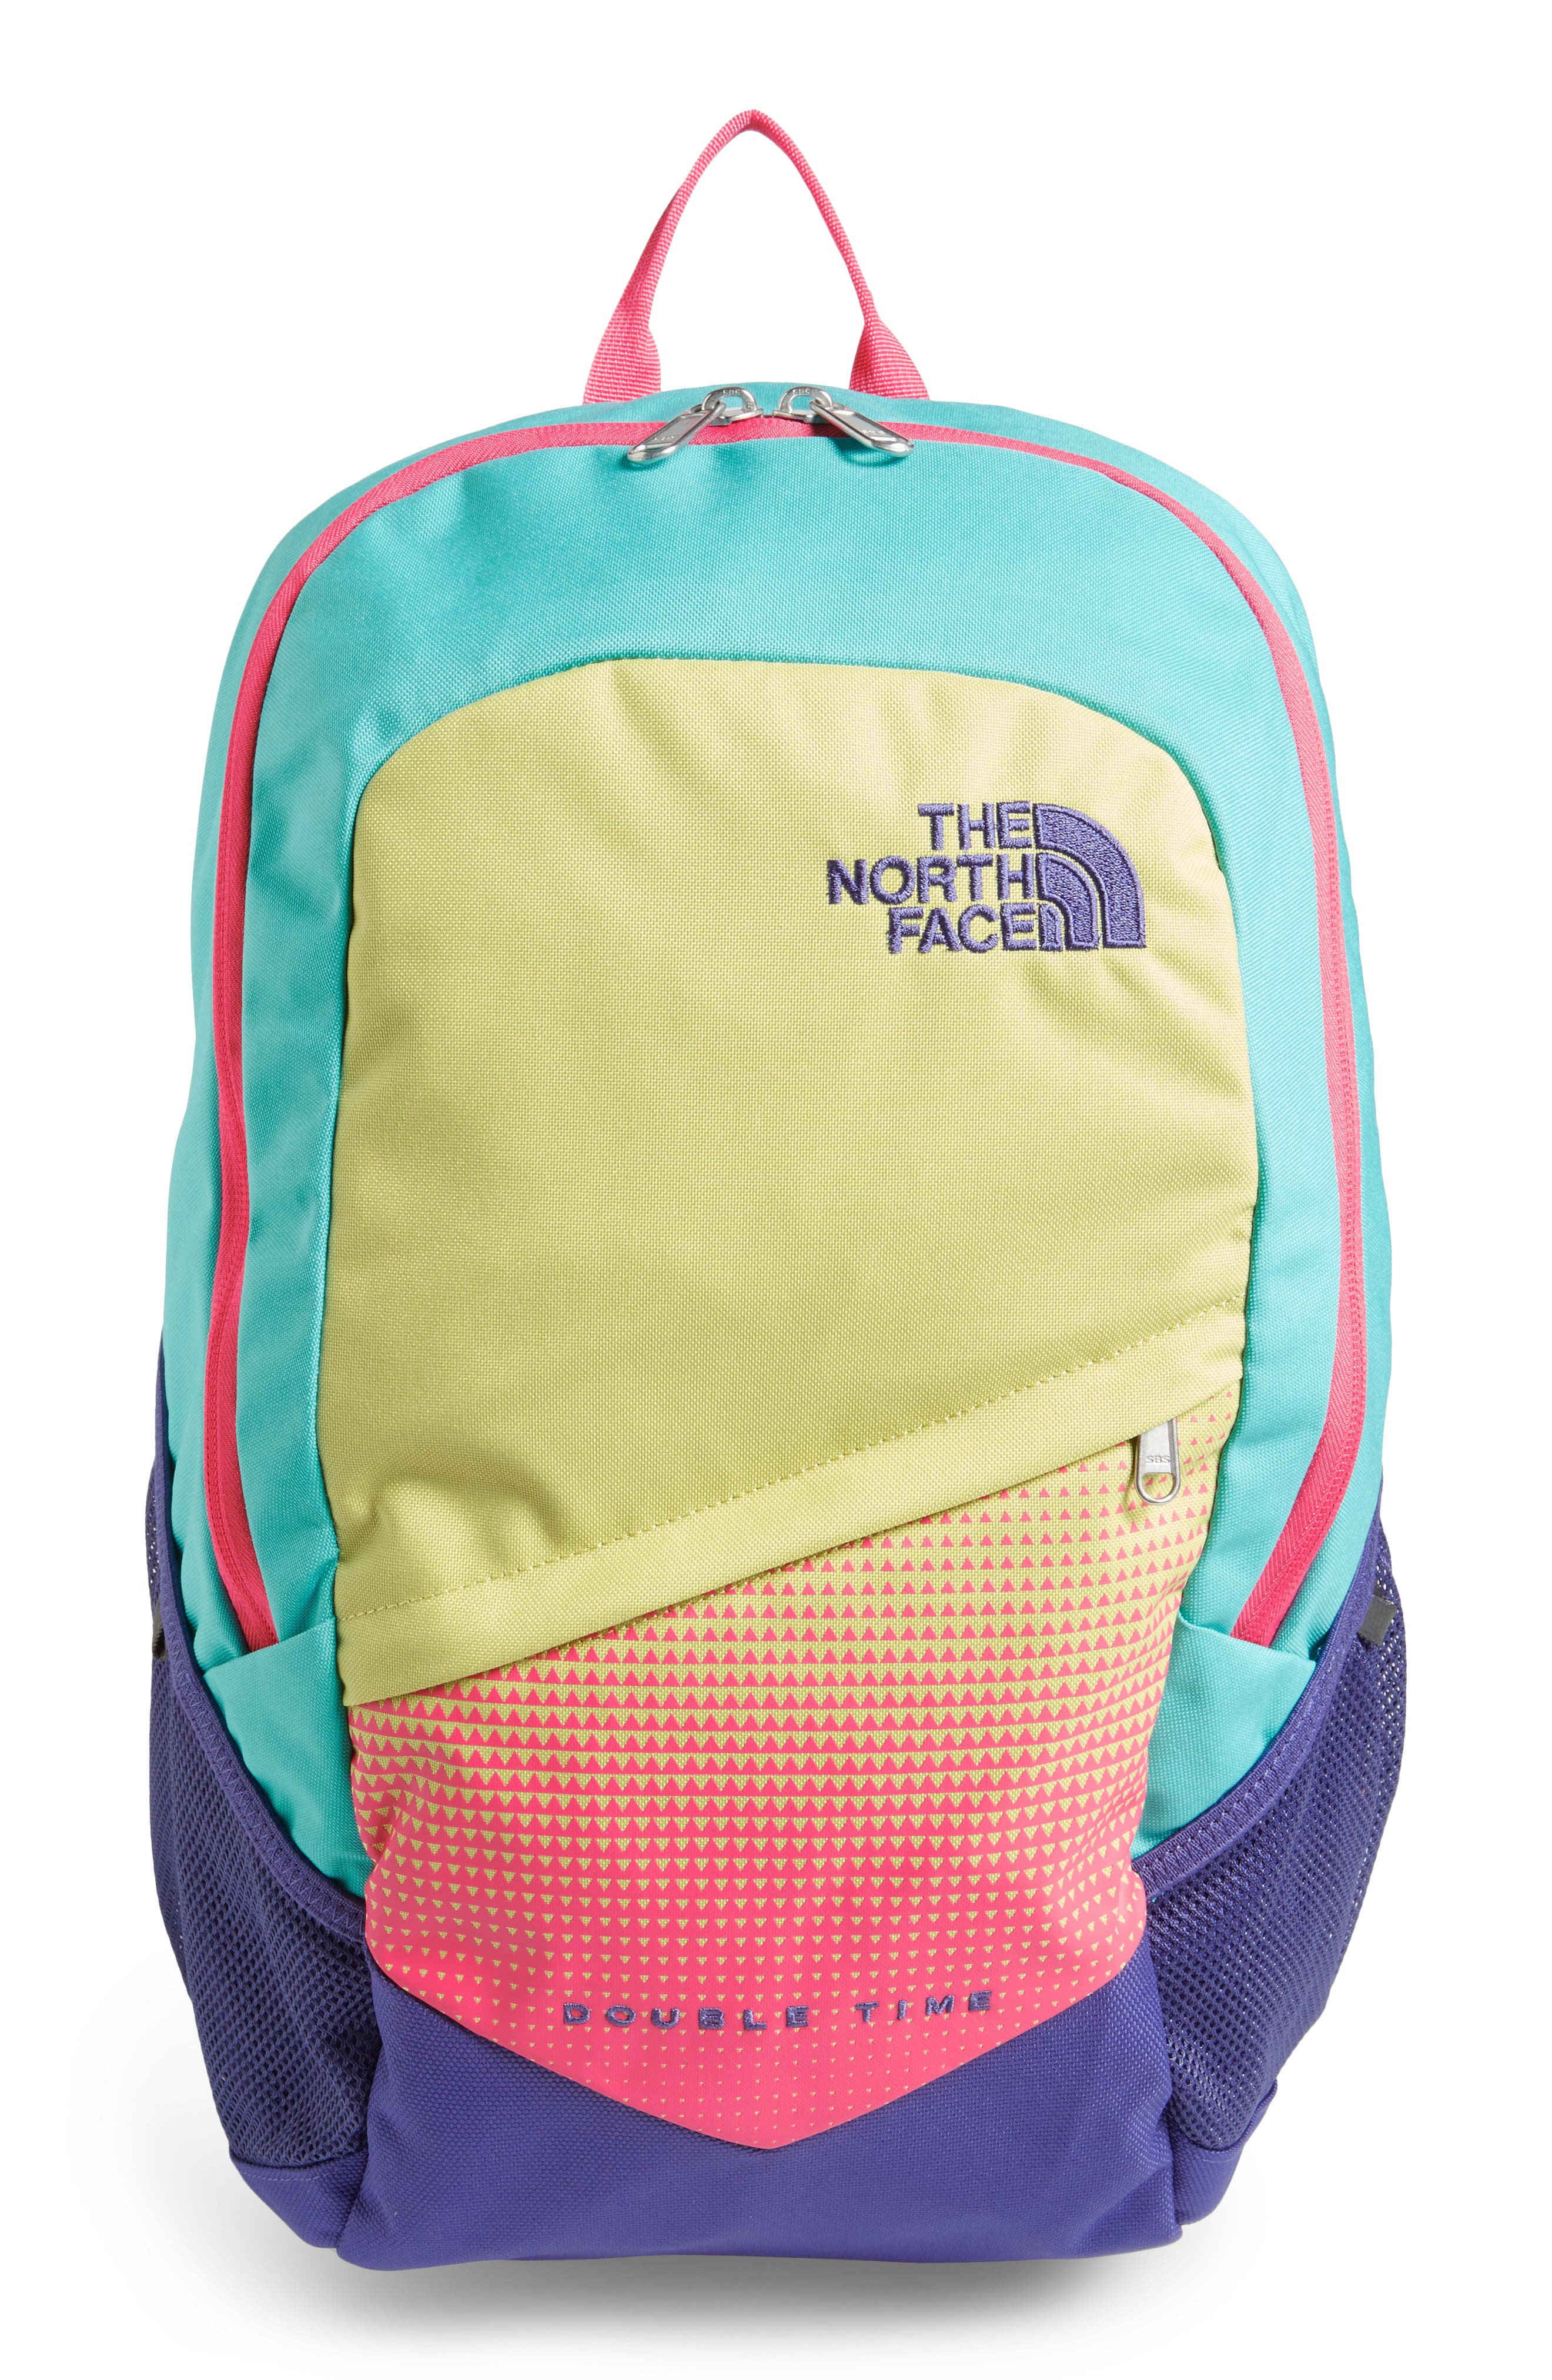 Main Image - The North Face 'Double Time' Backpack (Kids)